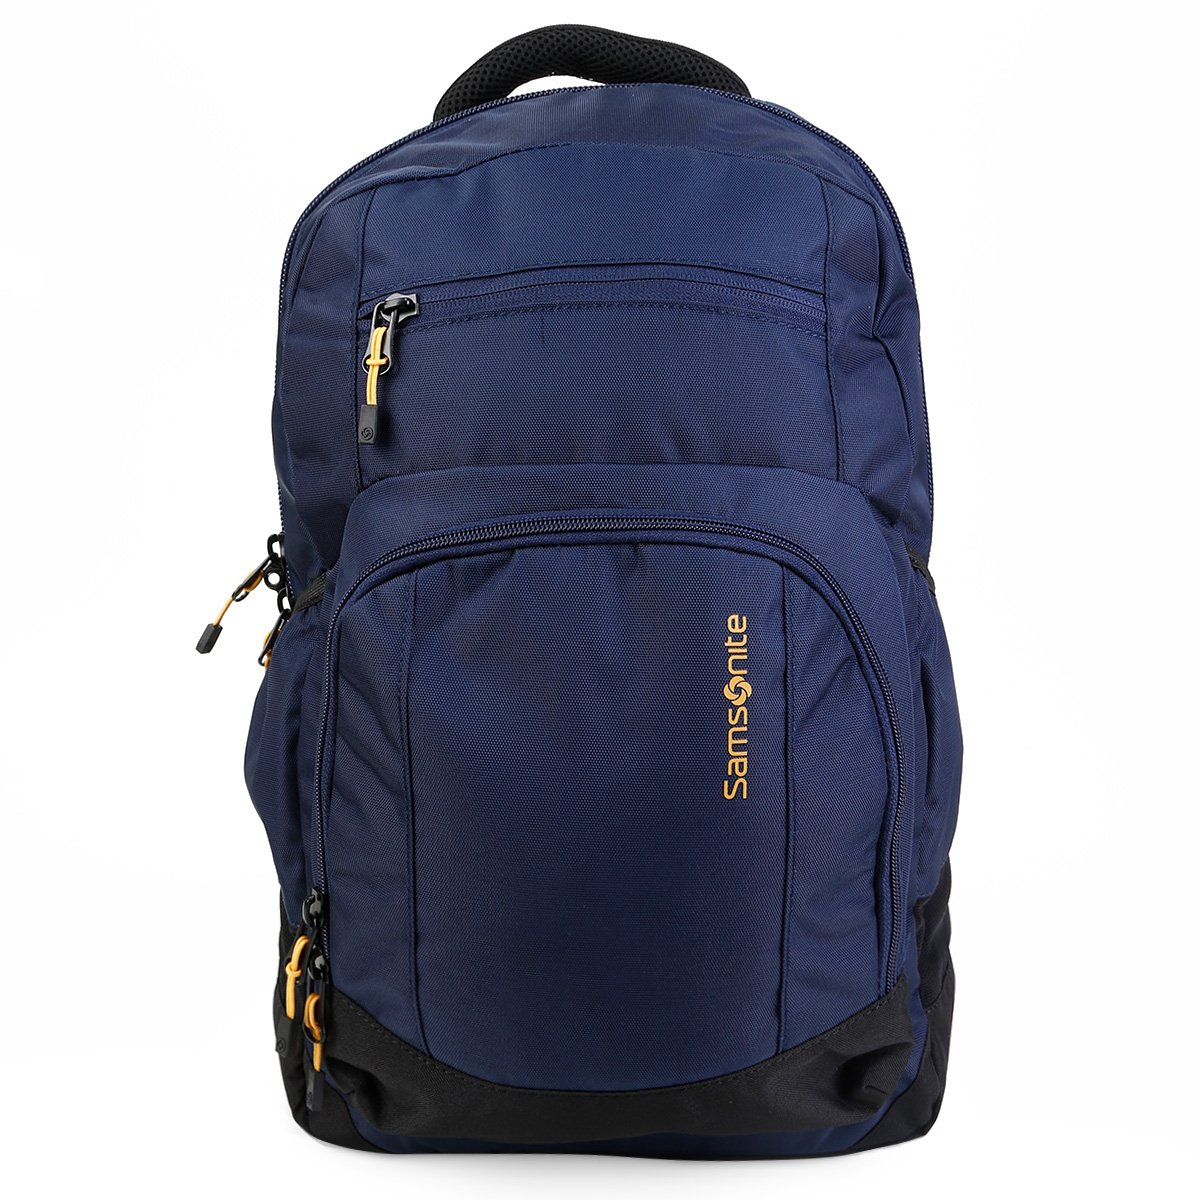 Mochila Samsonite Ultimate Bravo Laptop Masculina - 4